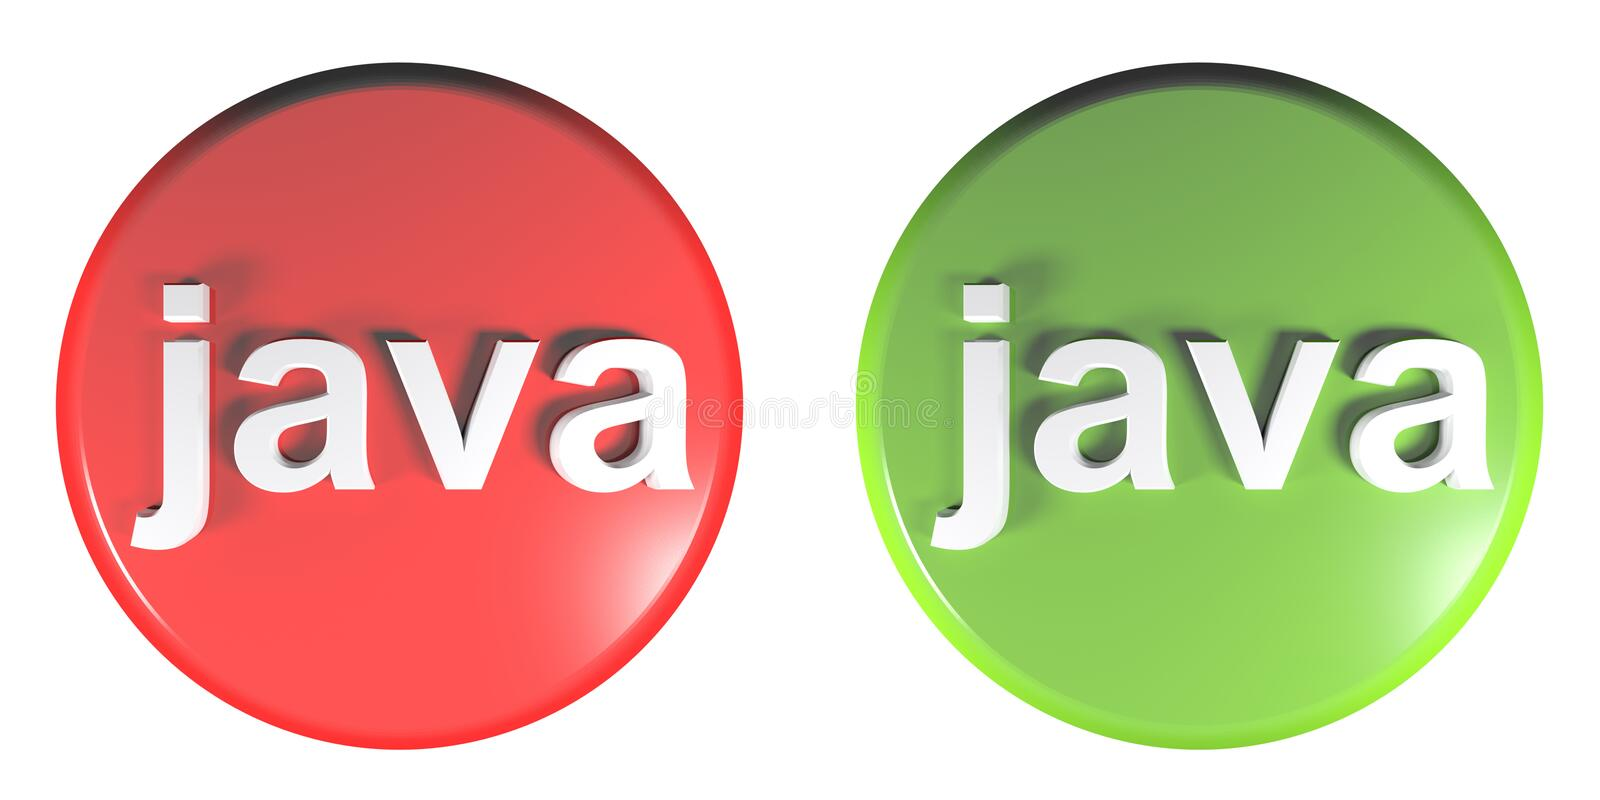 Red - Green circle JAVA push buttons - 3D rendering illustration. Two circle push buttons with the write JAVA: one is red and one is green - 3D rendering royalty free illustration